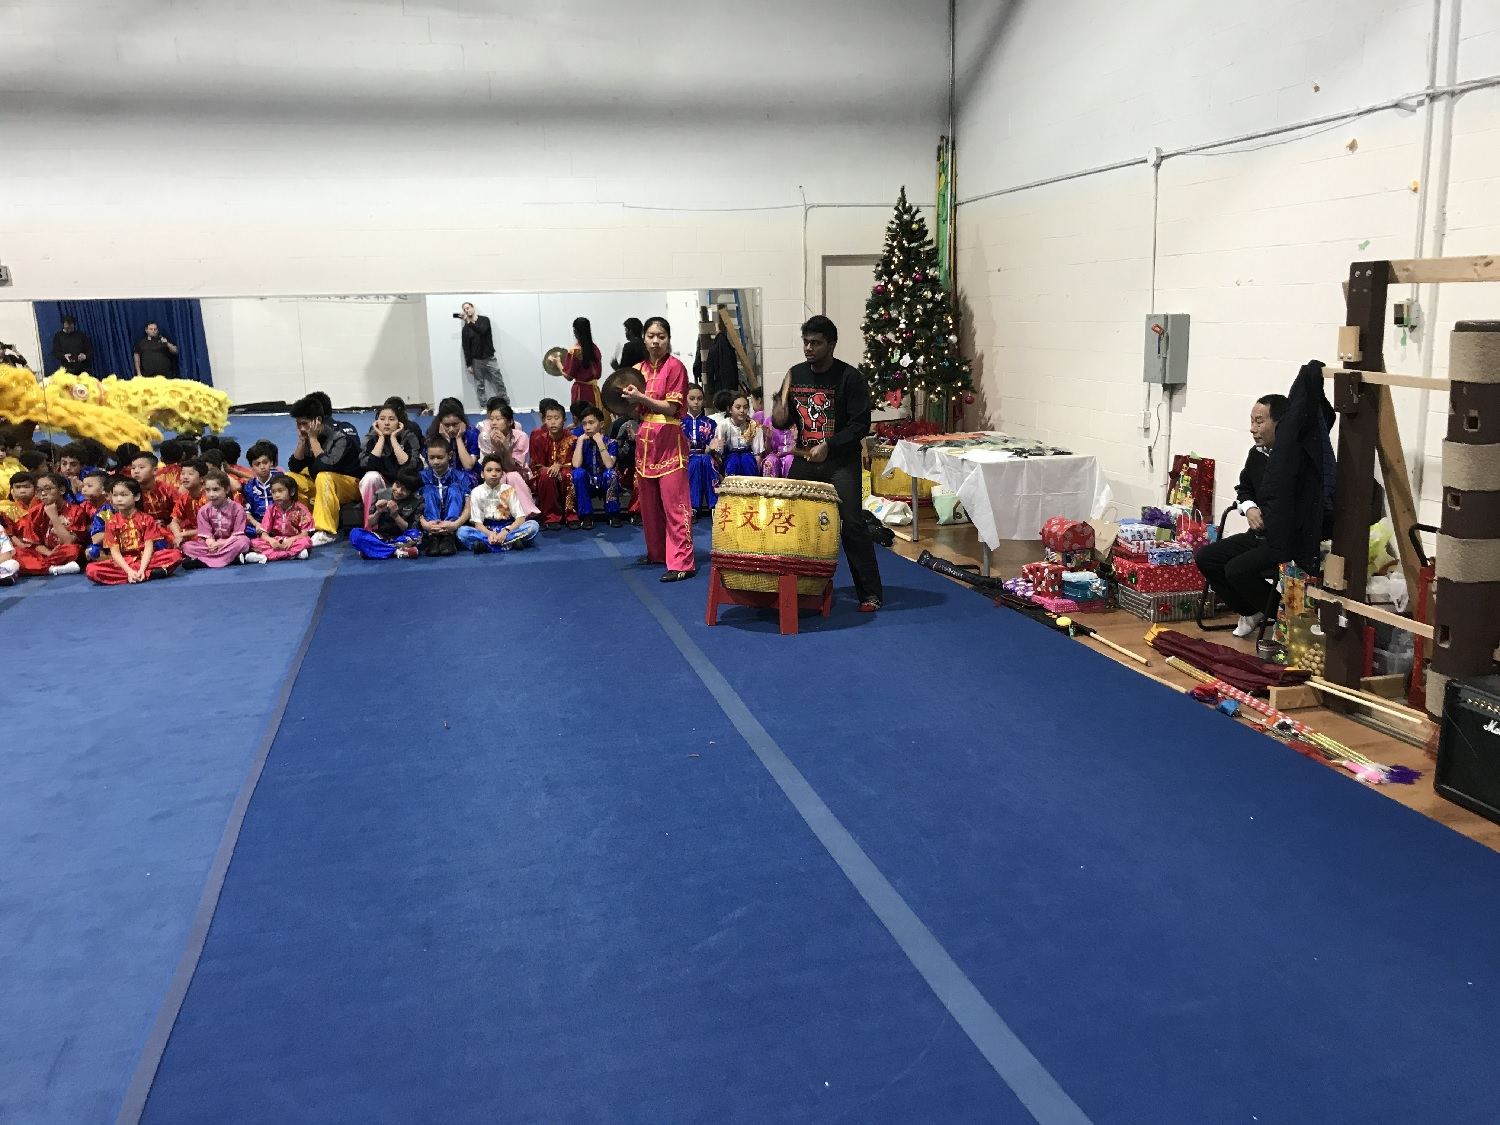 wayland-li-wushu-canada-ontario-toronto-classes-taolu-holiday-party-2017-03.jpg